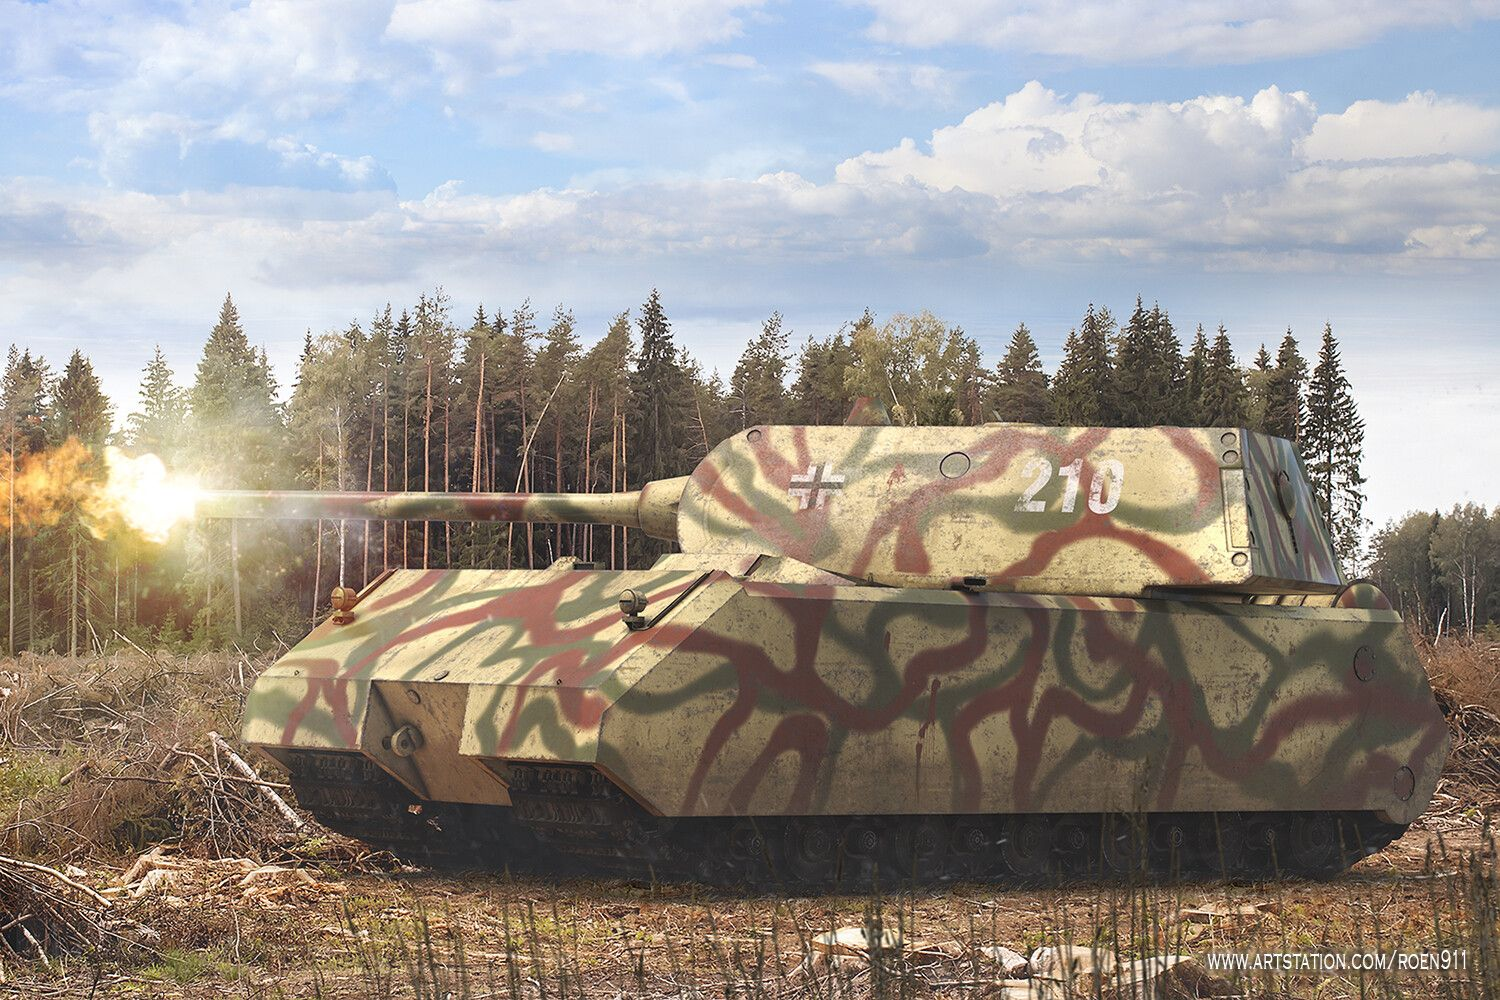 Pin By Juan On Tanks In 2020 Military Paint War Thunder World Of Tanks